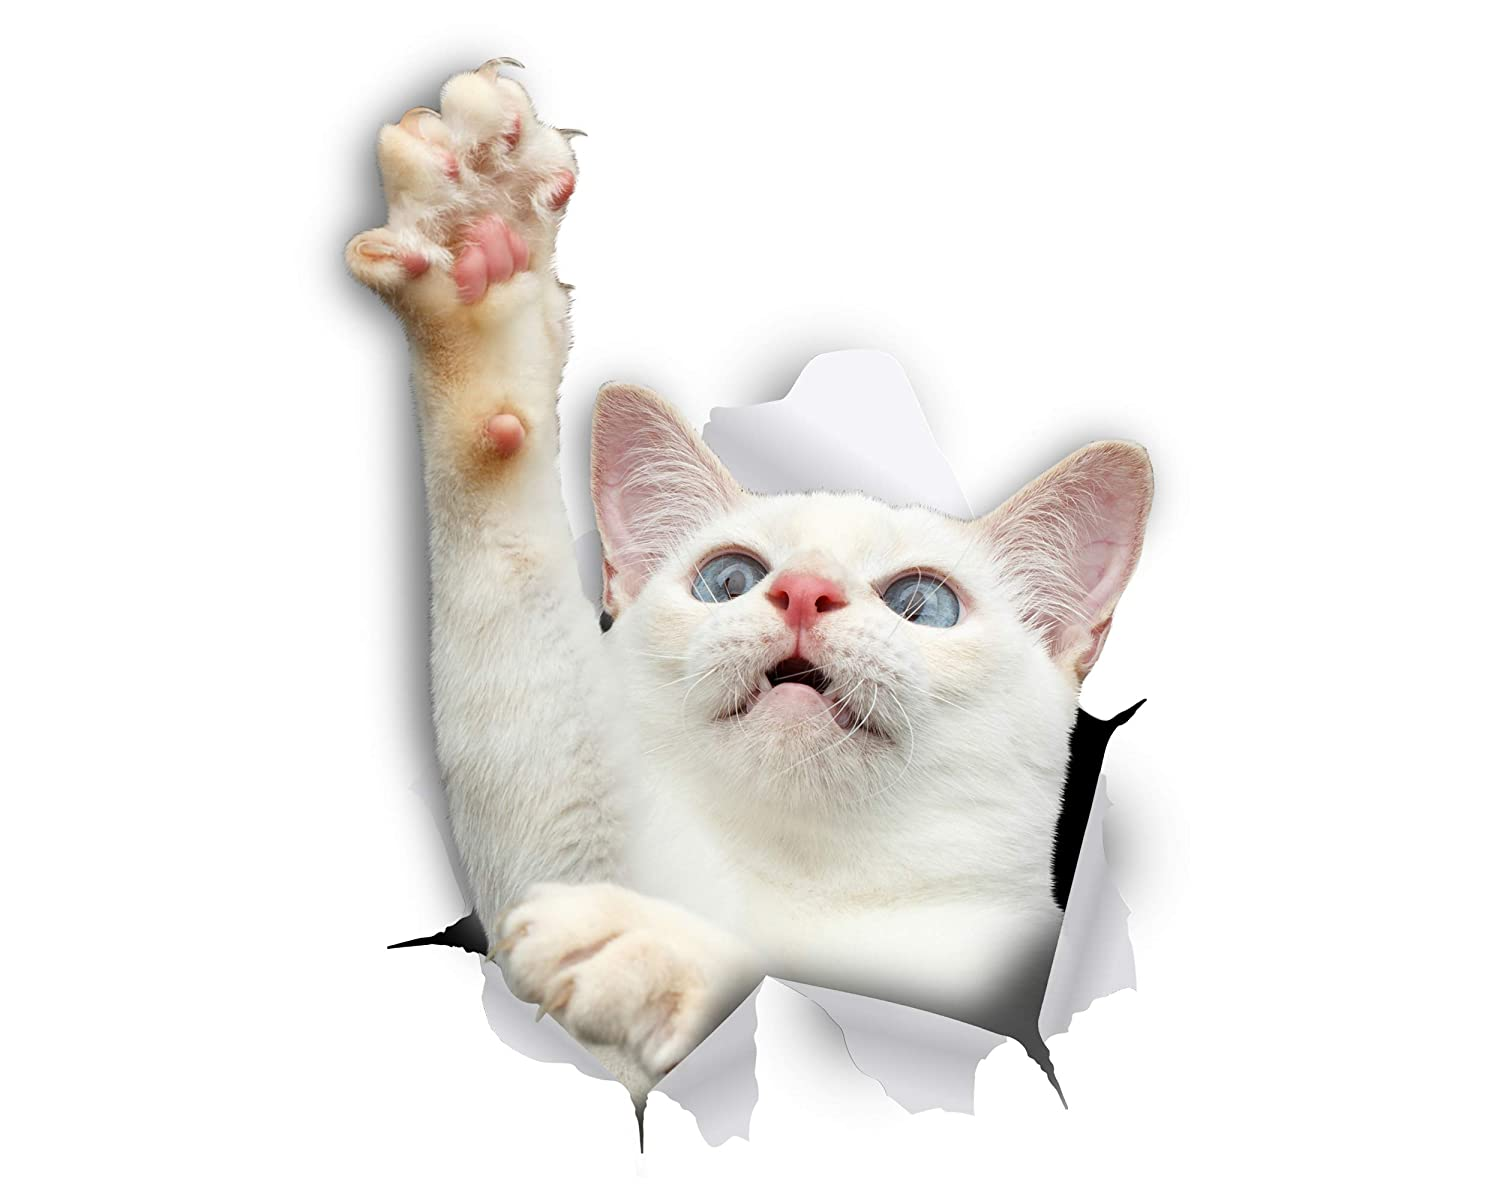 Winston & Bear 3D Cat Stickers - 2 Pack - White Reaching Cat Decals for Wall, Stickers for Bedroom - Fridge - Toilet - Room - Retail Packaged